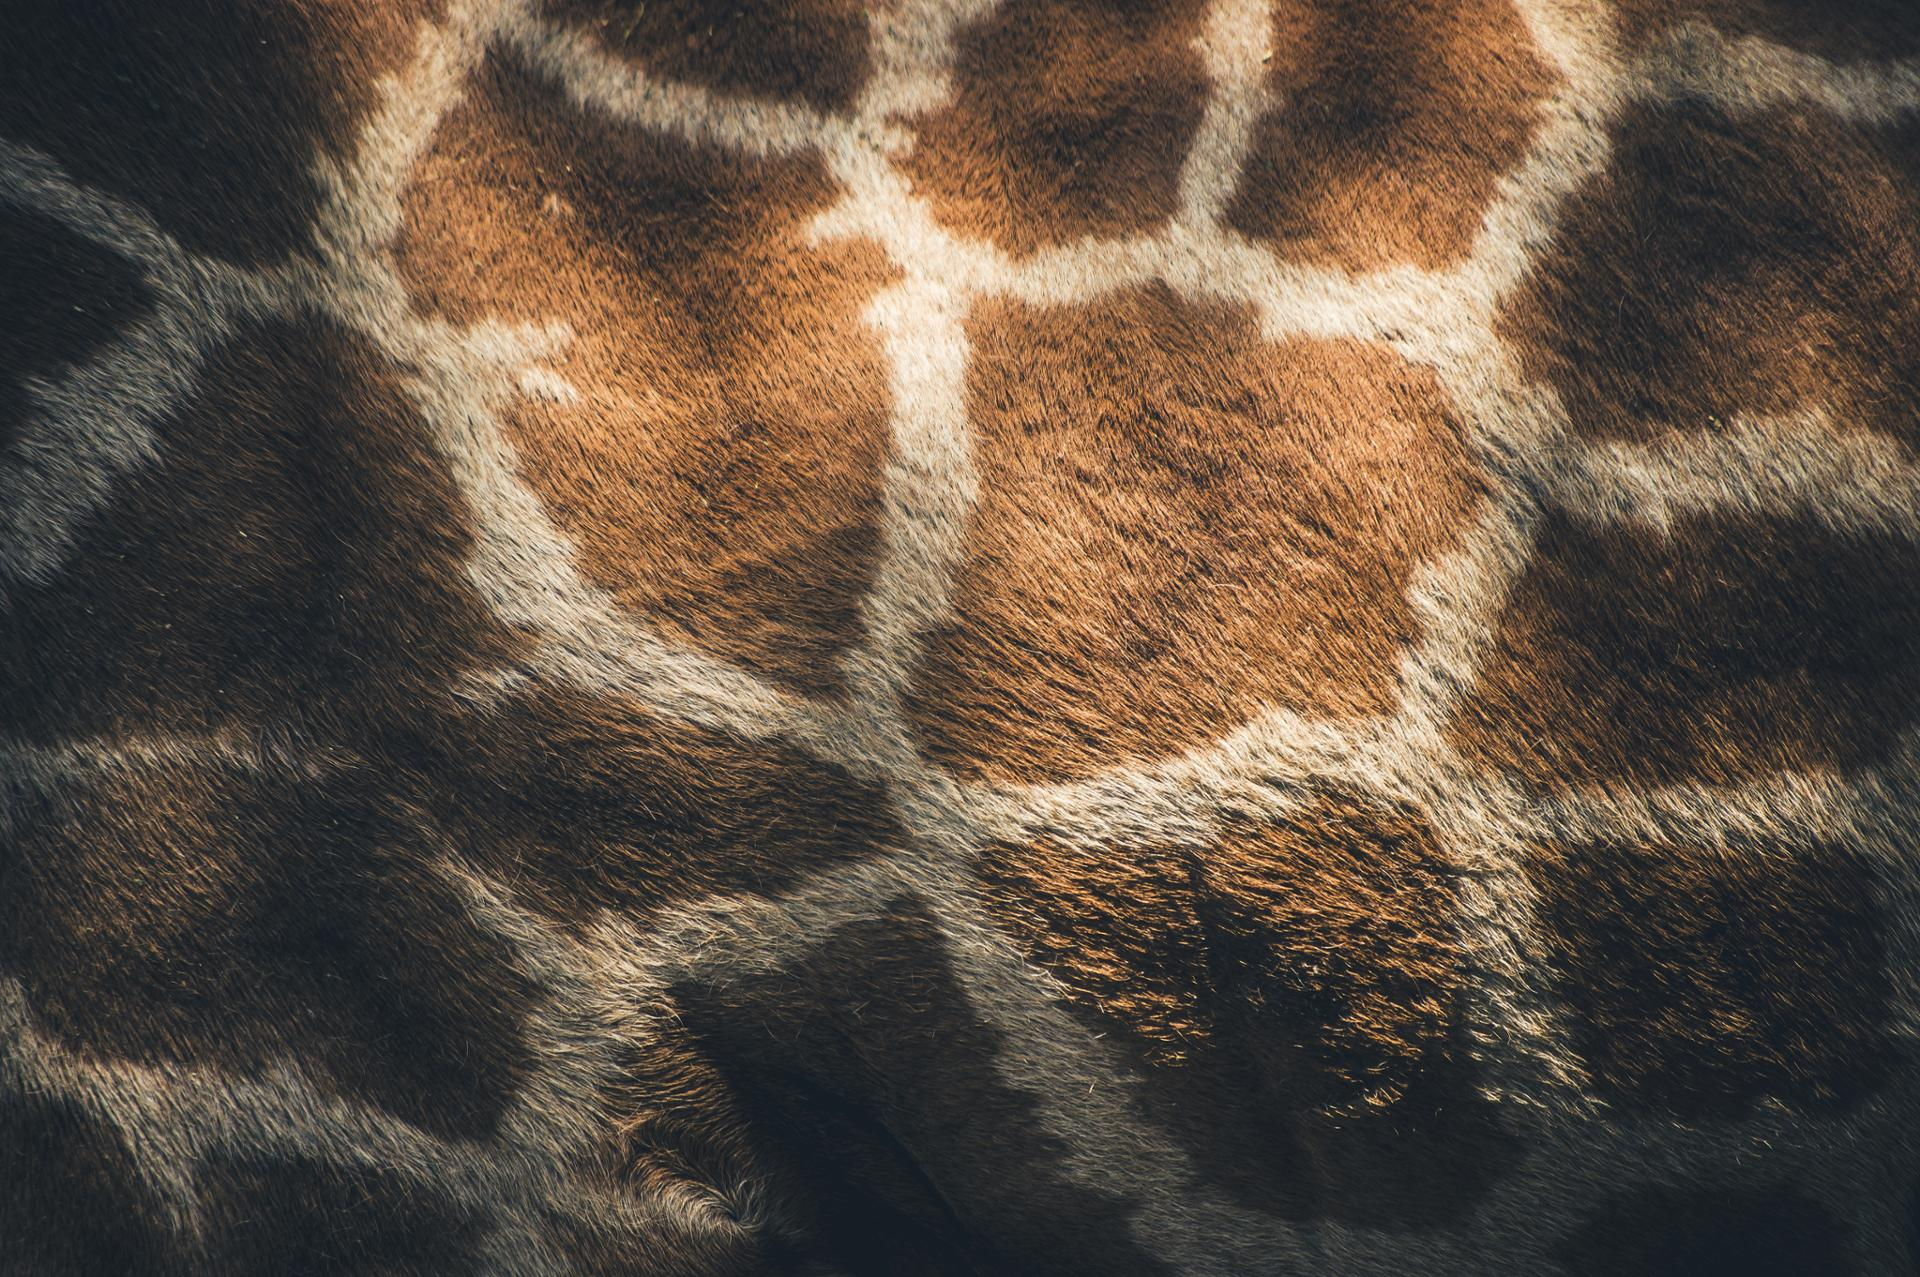 Wallpaper of giraffe